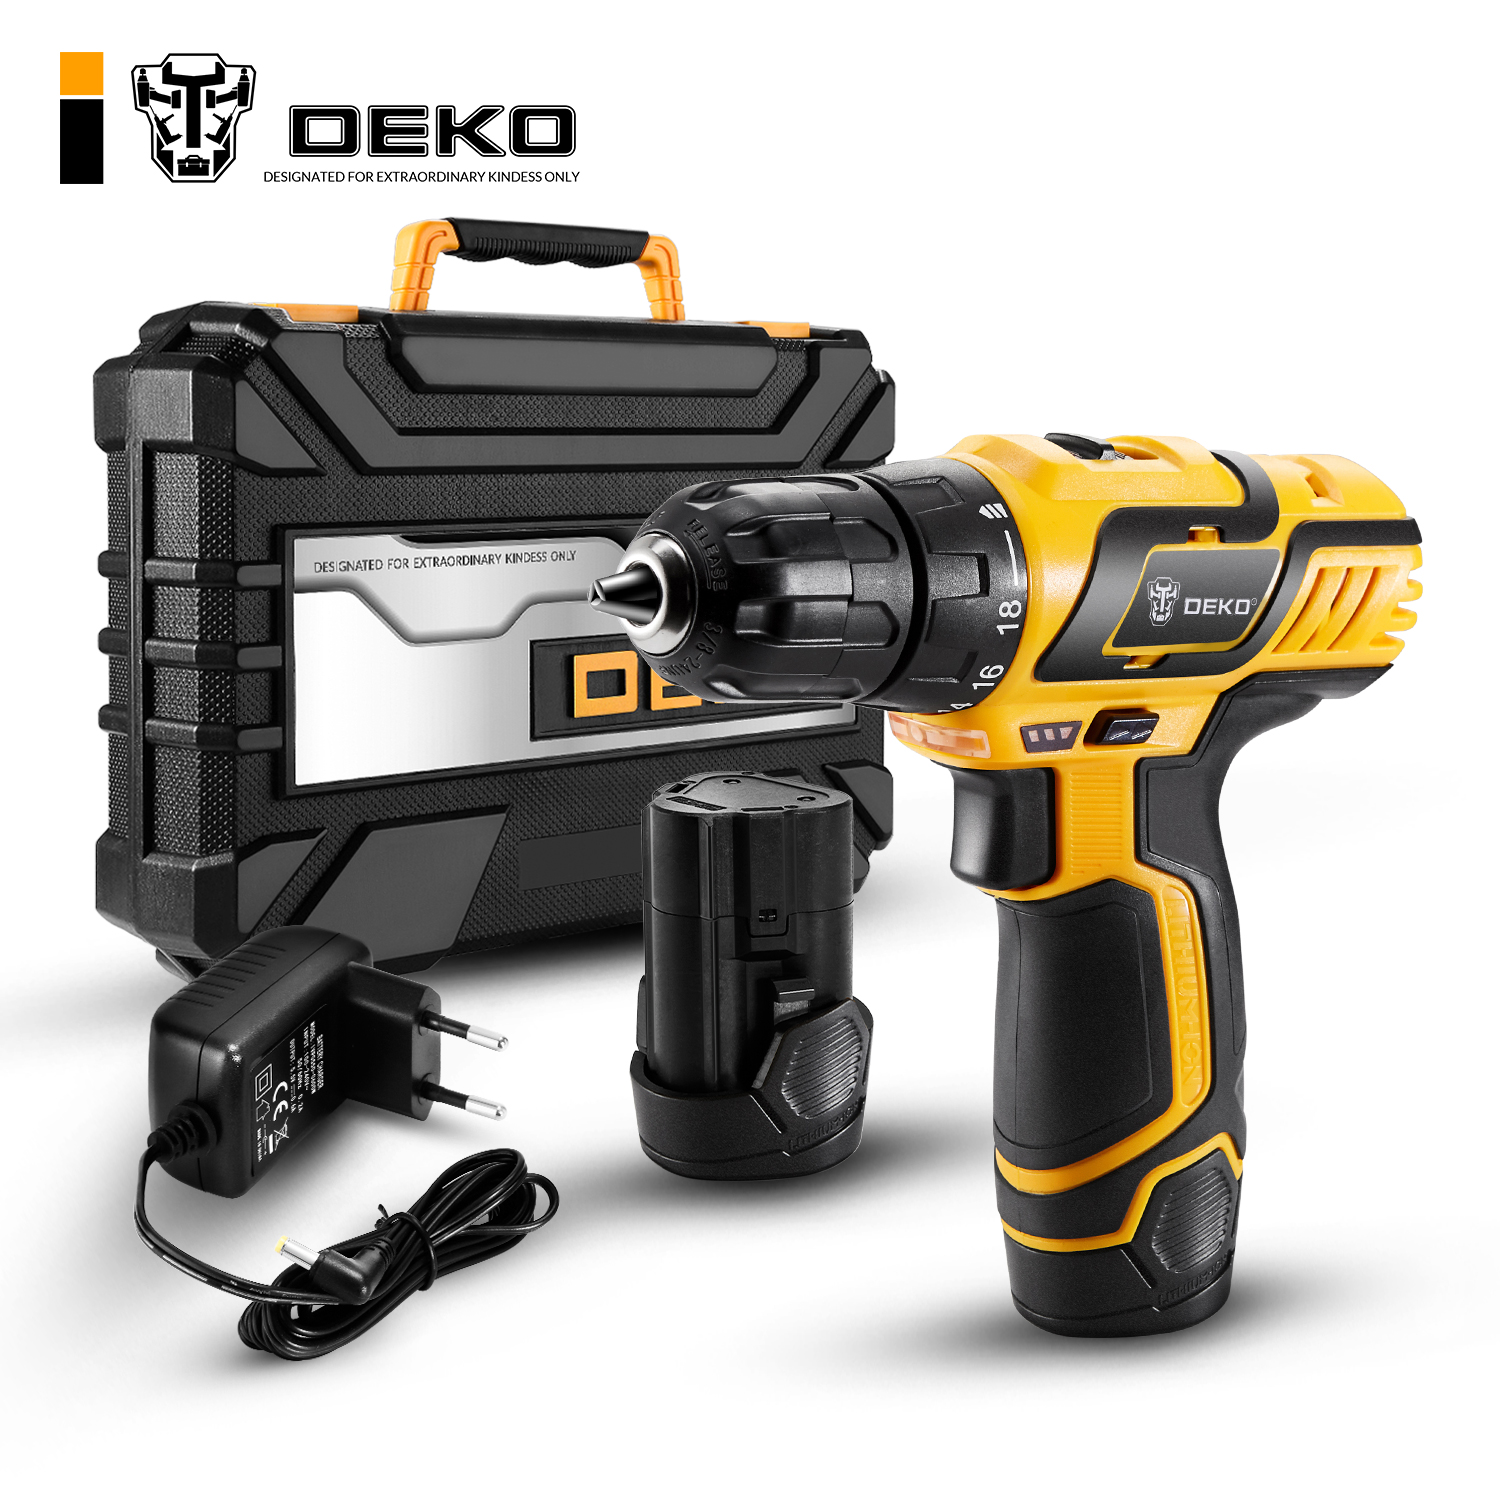 DEKO GCD10.8DU3 10.8-Volt Electric Screwdriver Cordless Drill Mini Wireless Power Driver DC Lithium-Ion Battery 10mm 2-Speed